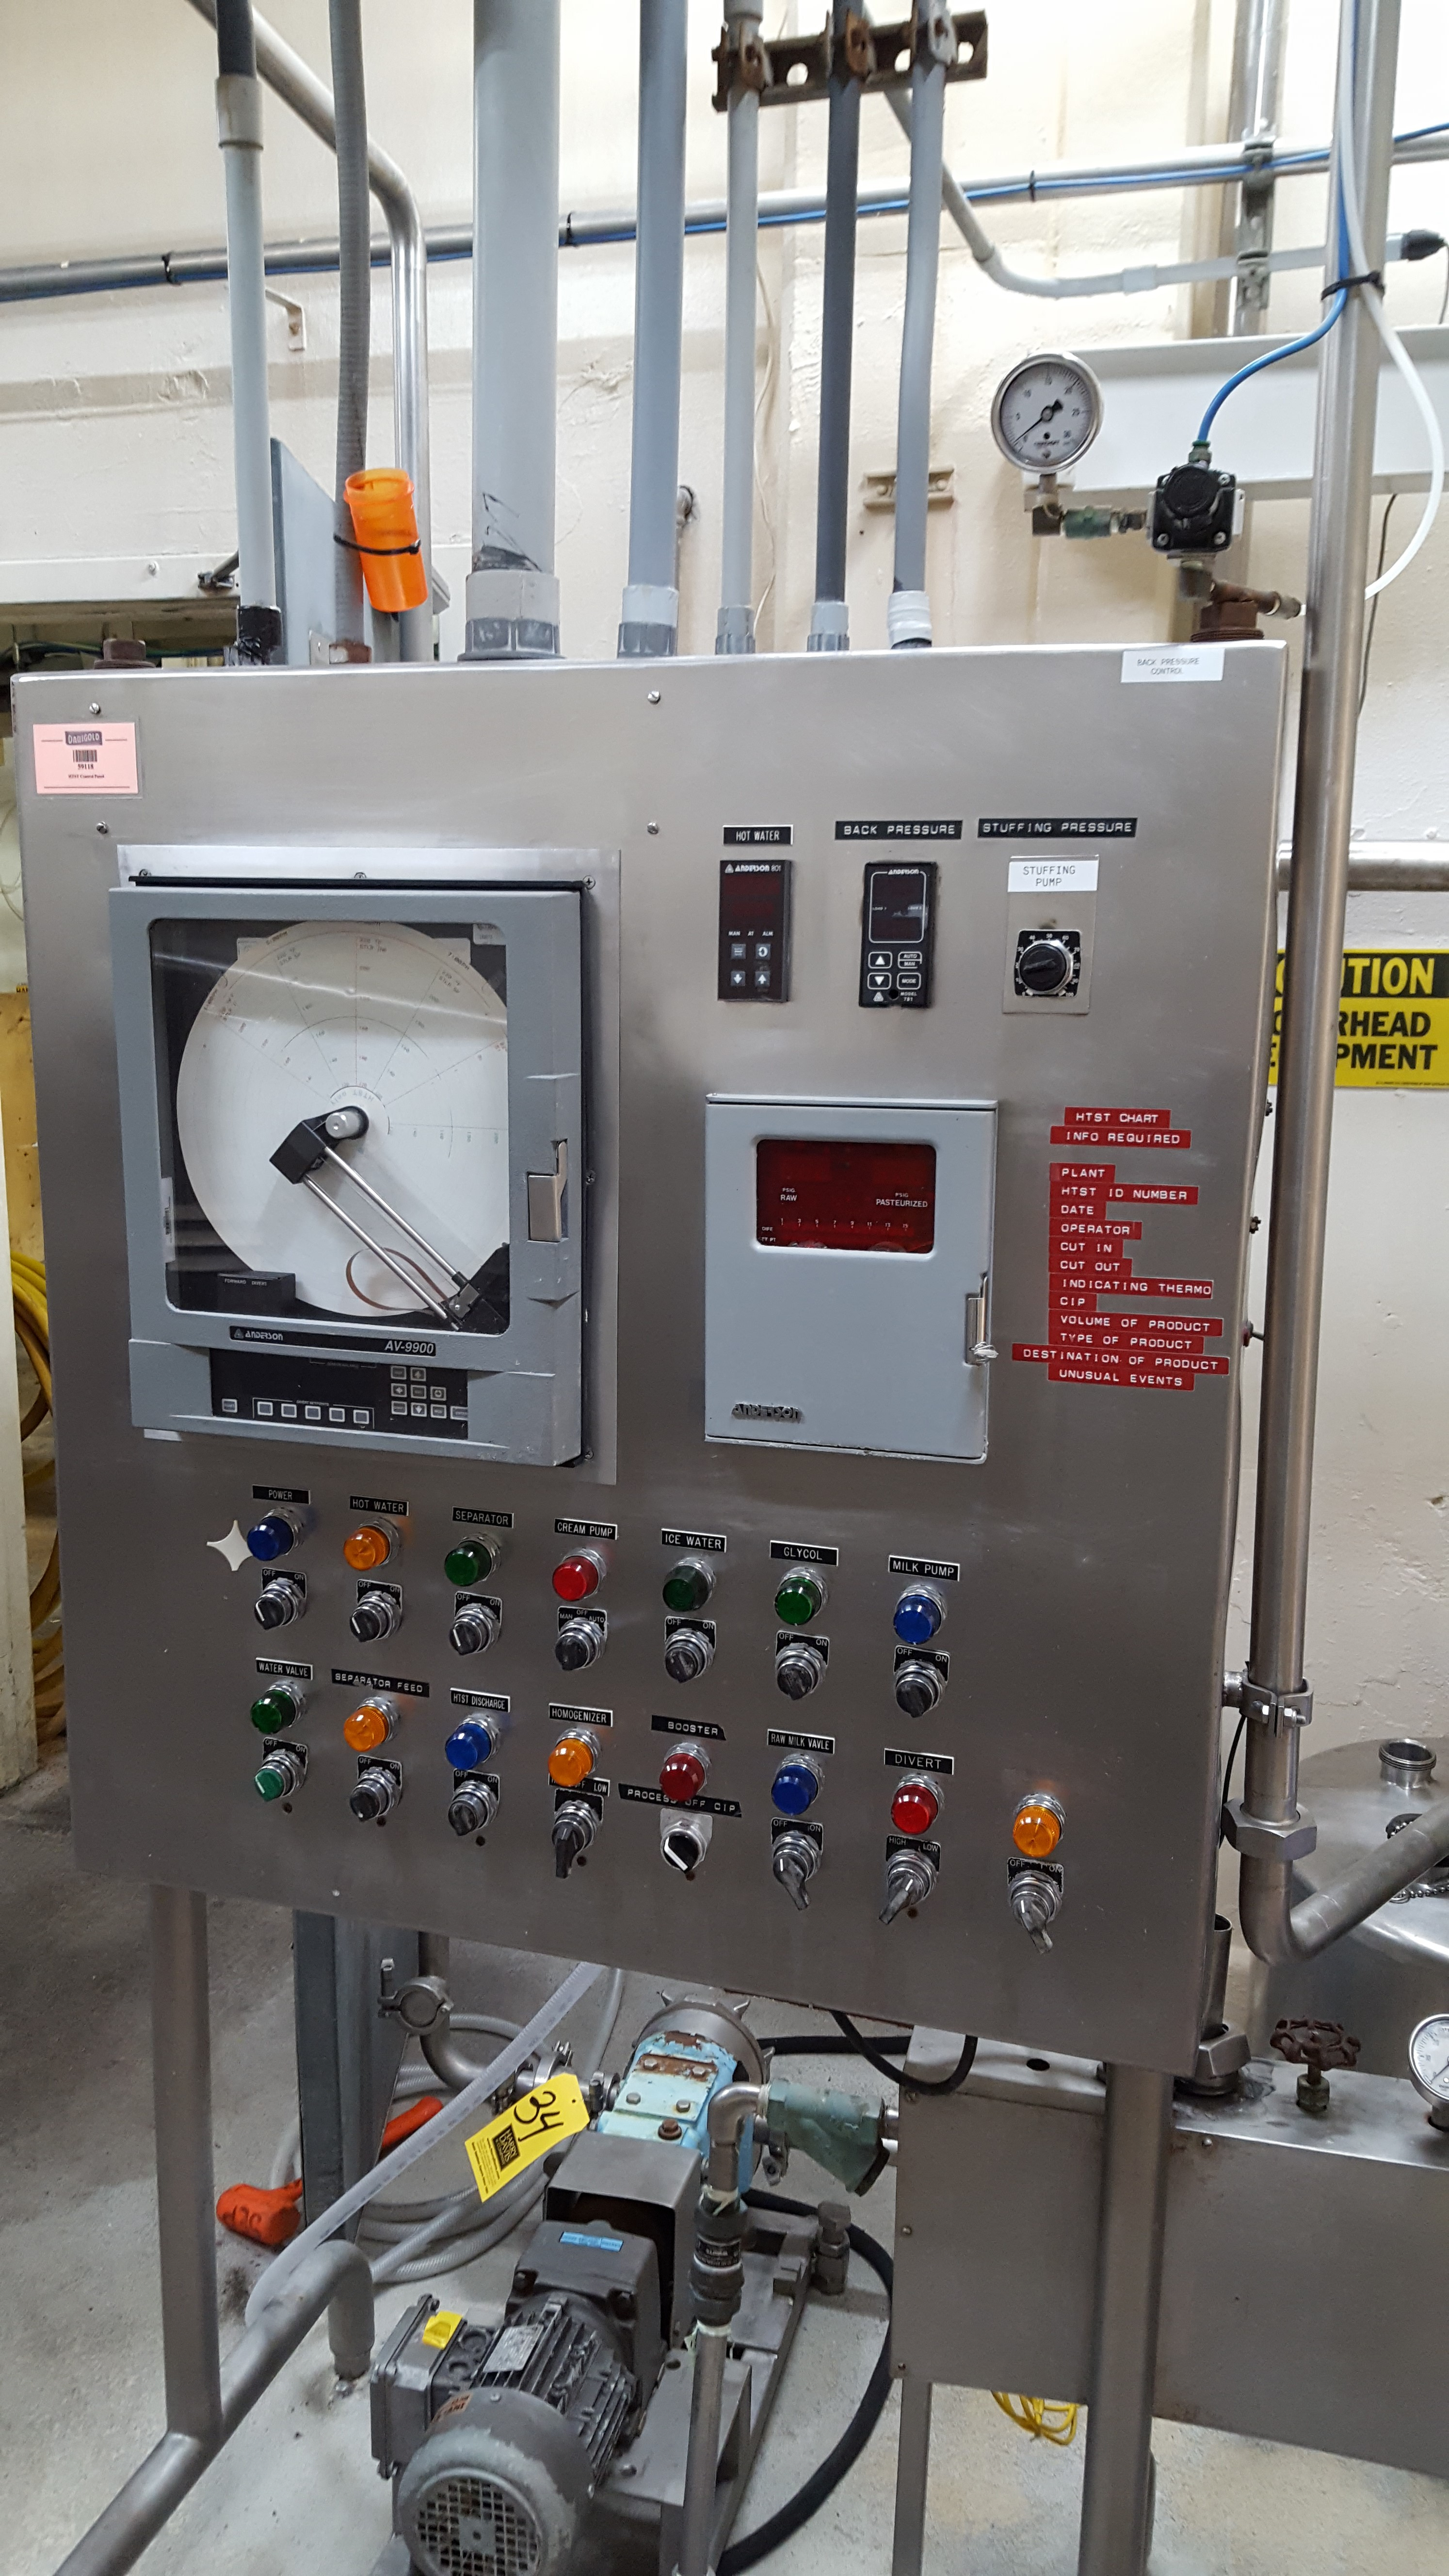 Tetra Pak 3 000 Gph Pasteurization System With Plate Heat